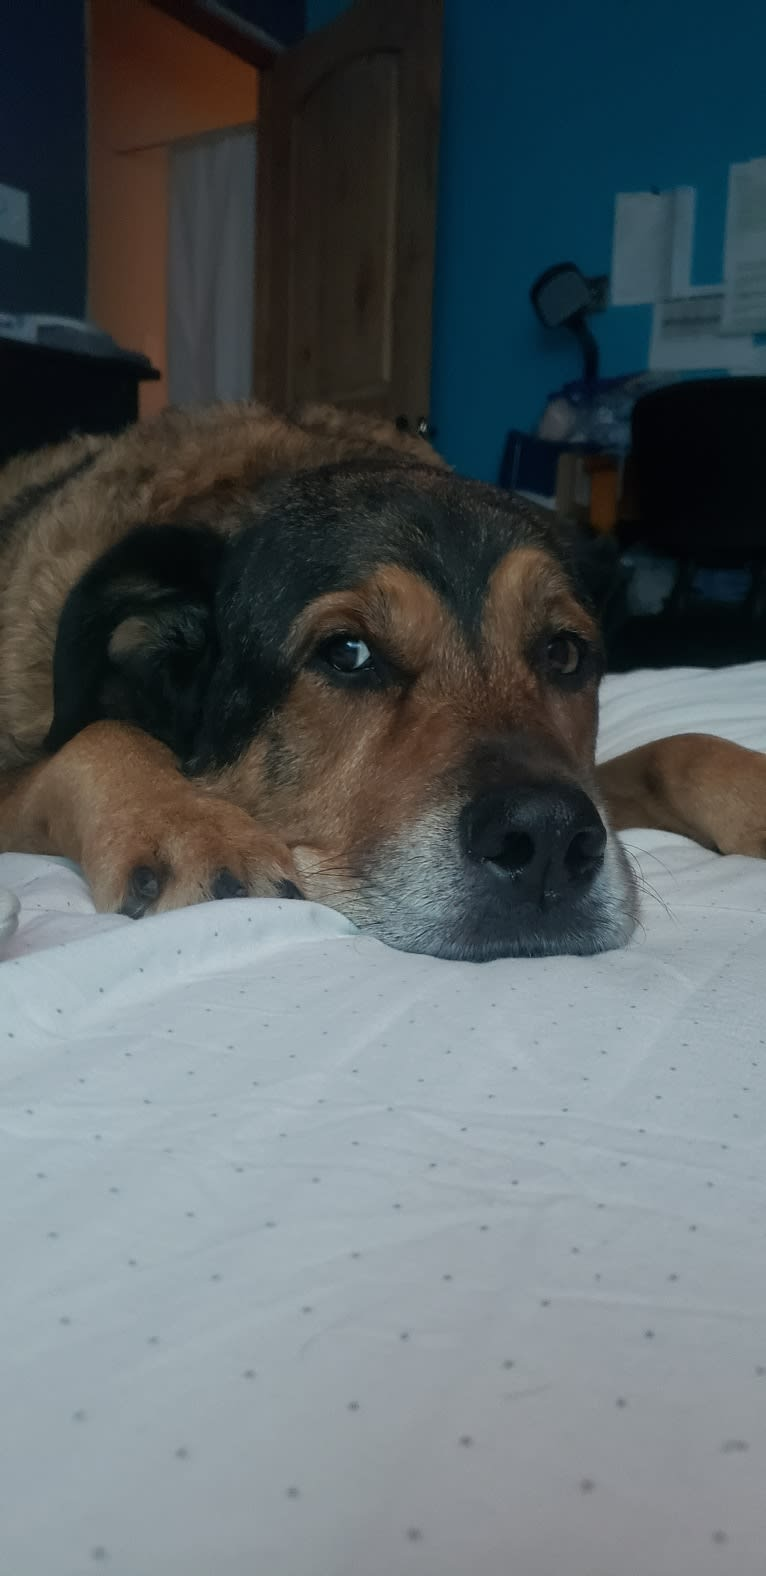 Photo of Cooper, a Great Pyrenees and Rottweiler mix in Conroe, Texas, USA